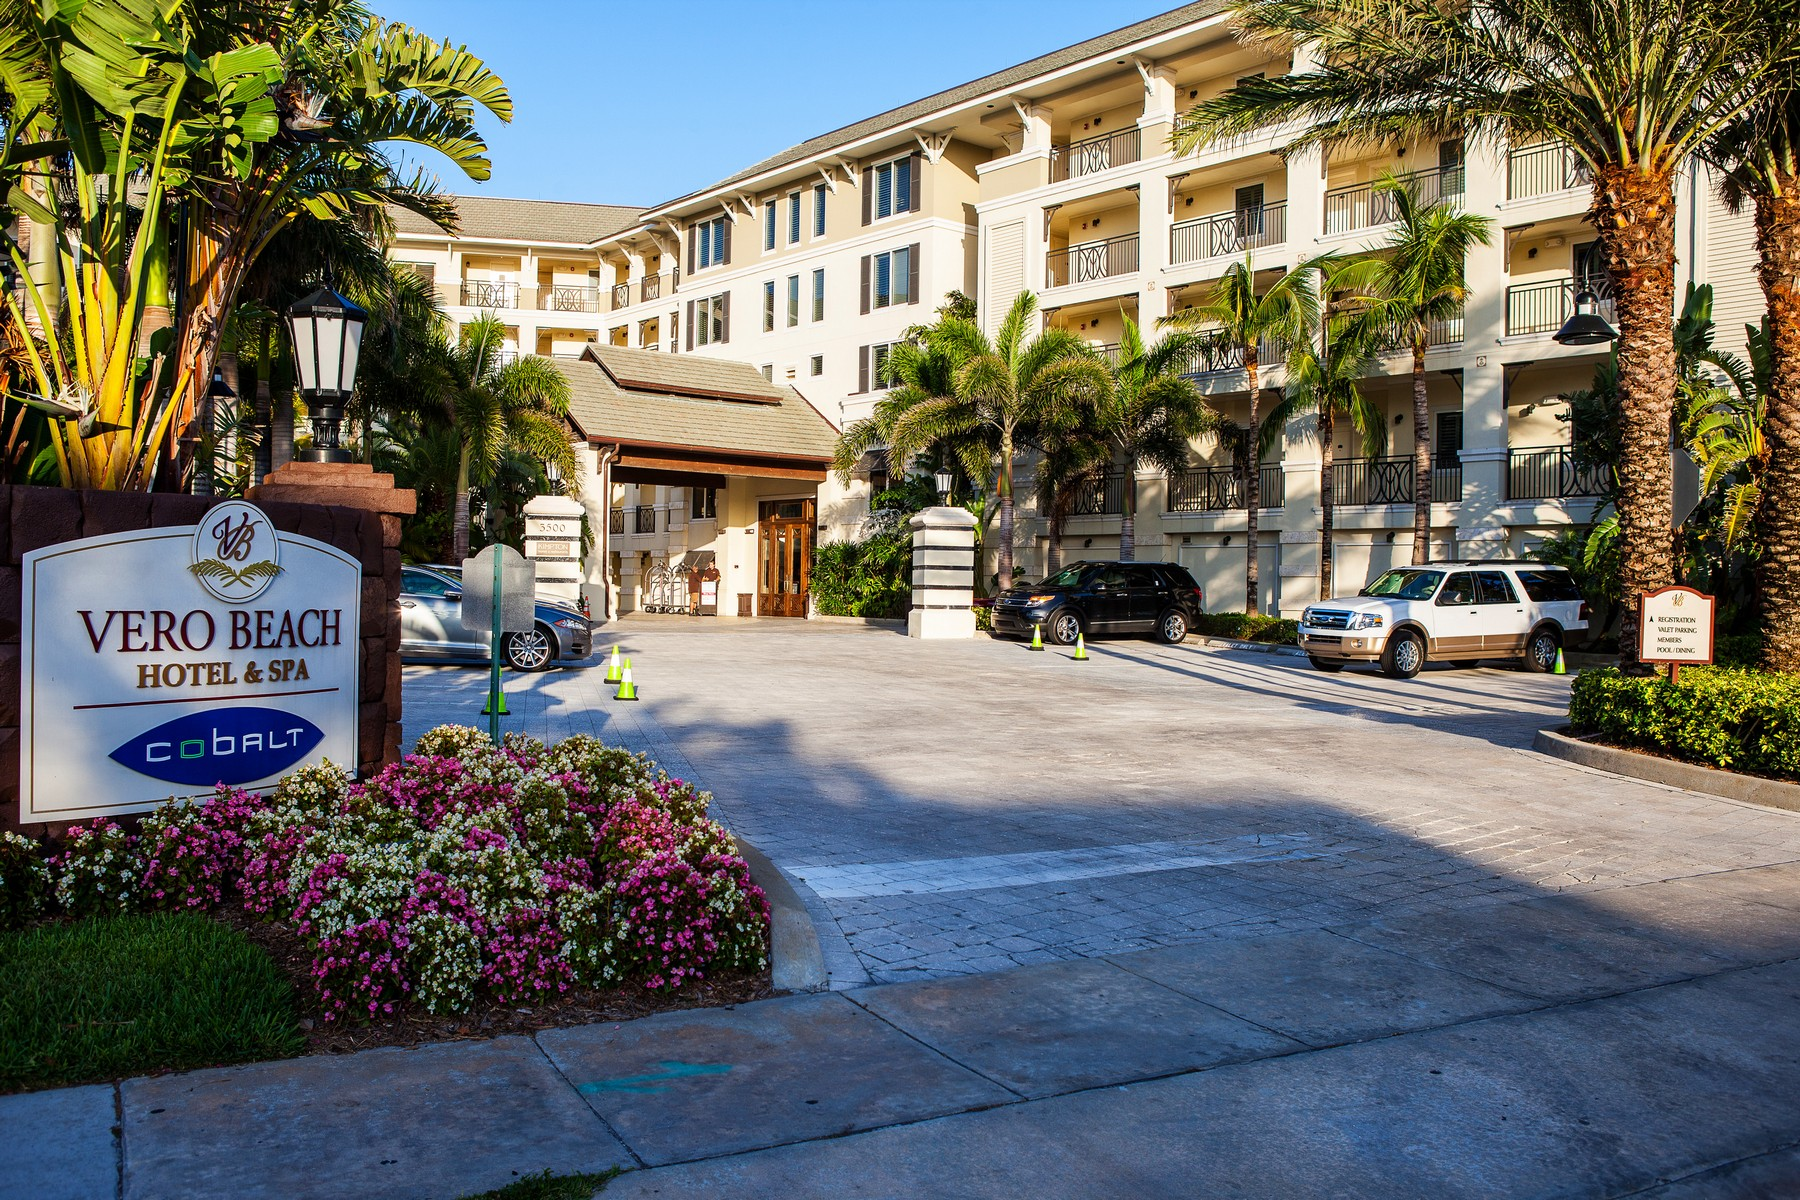 Condominium for Sale at Furnished Direct Oceanfront Condo 3500 Ocean Drive #306, Vero Beach, Florida, 32963 United States